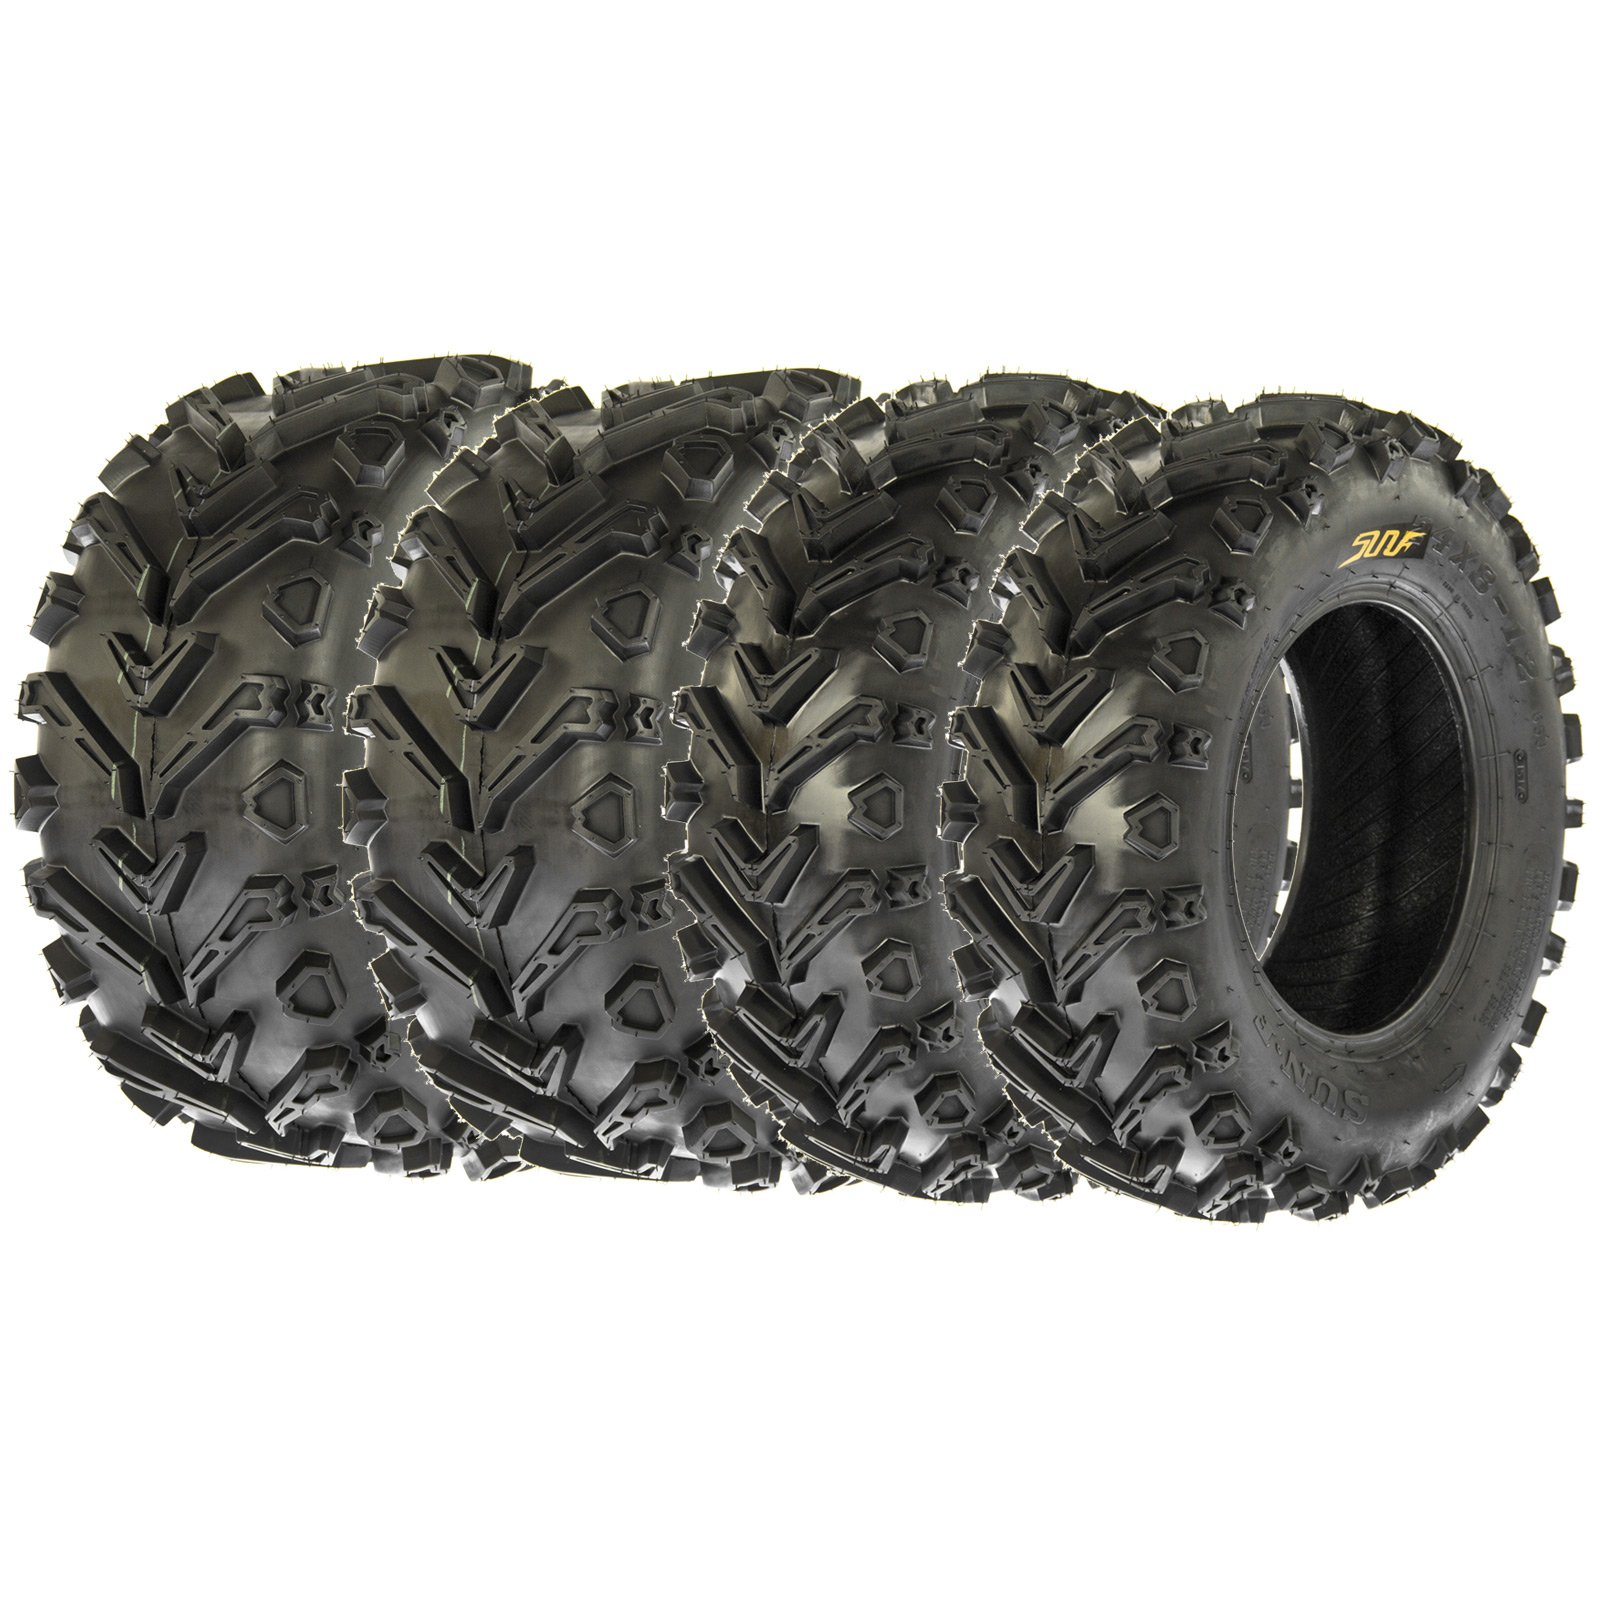 Set of 4 SunF A041 ATV/UTV Tires 25x8-12 & 25x10-12, 6 Ply